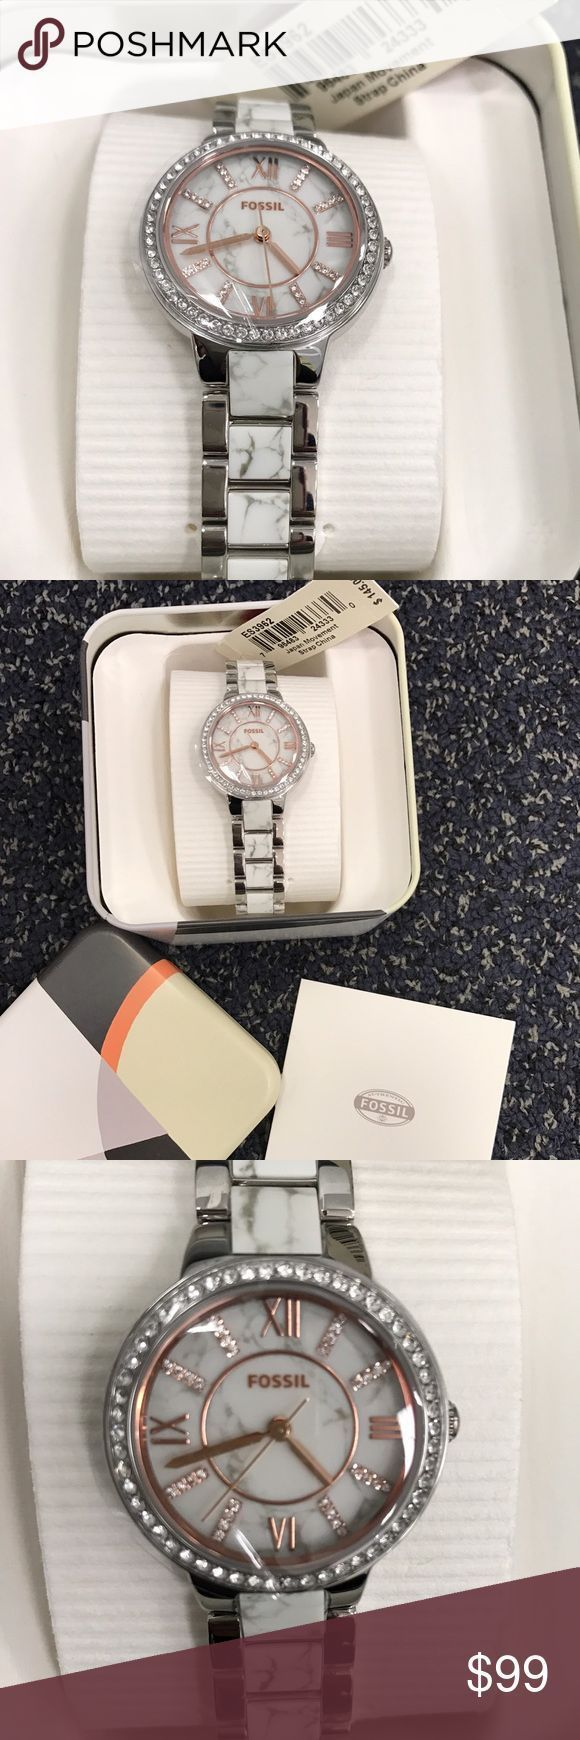 Montre pour femme : awesome Montre pour femme : SOLD OUT  Brand new Fossil marble bracelet watch